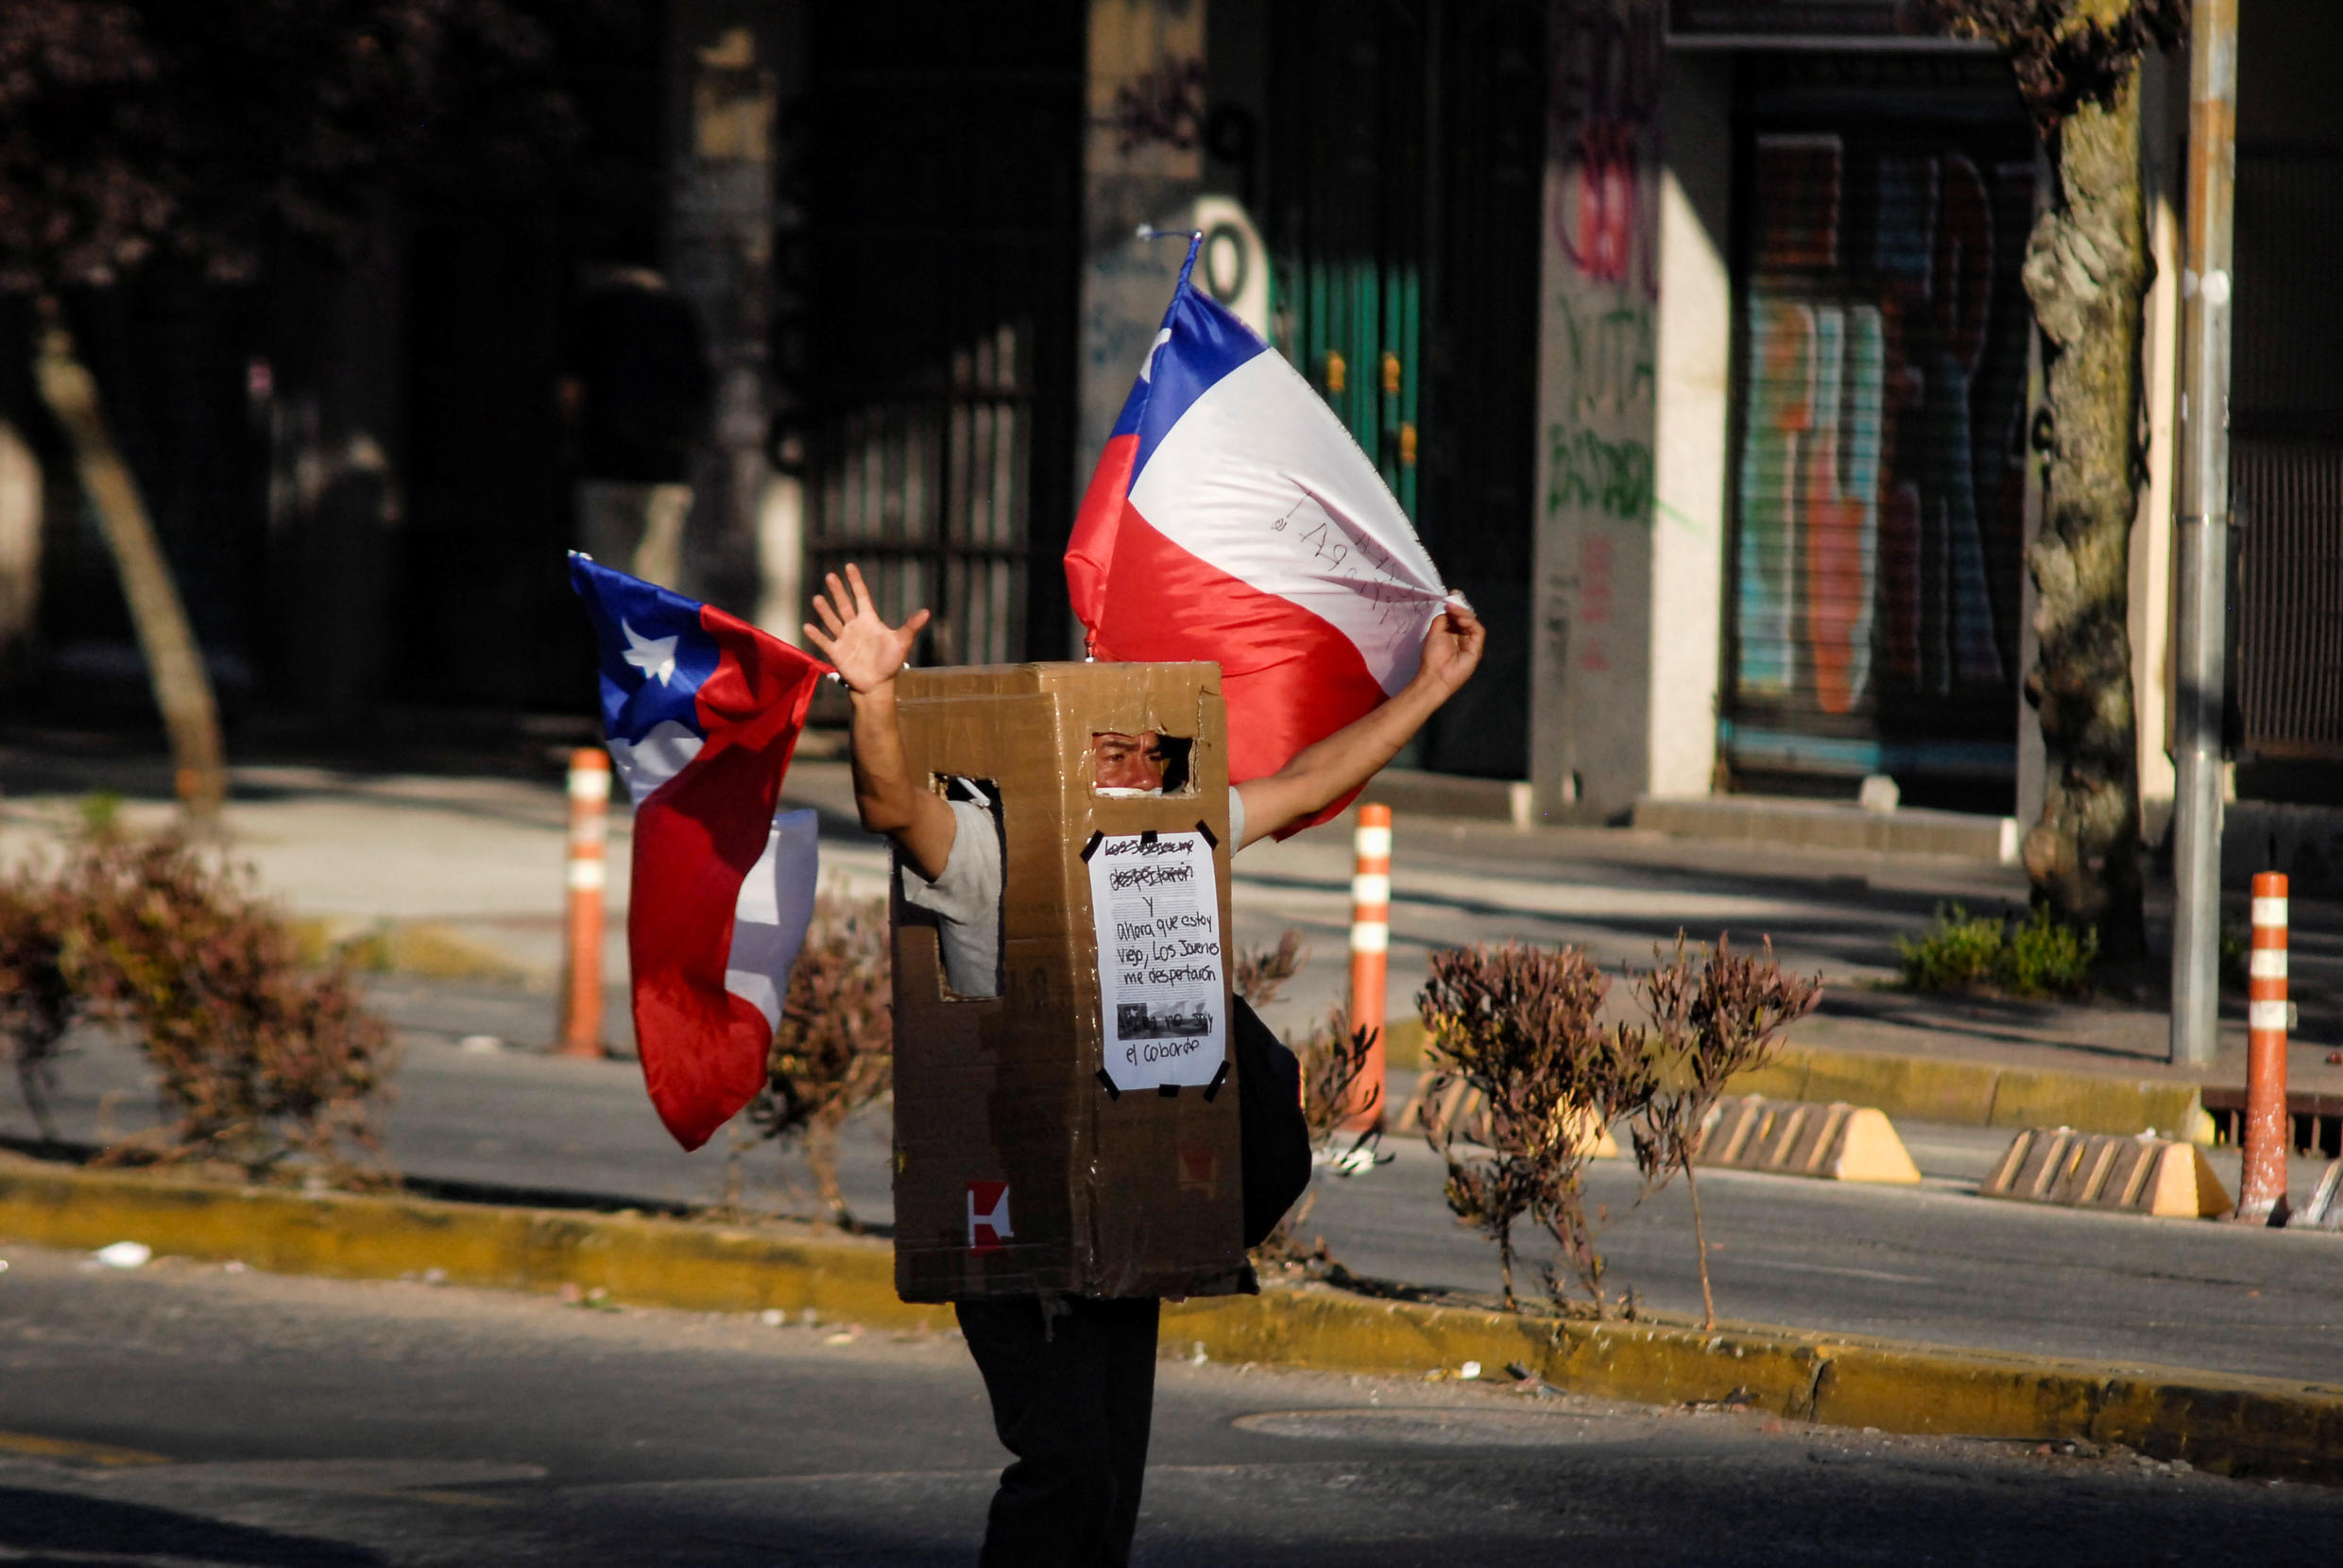 2019-12-03T015324Z_113189273_RC2DND9156SB_RTRMADP_3_CHILE-PROTESTS